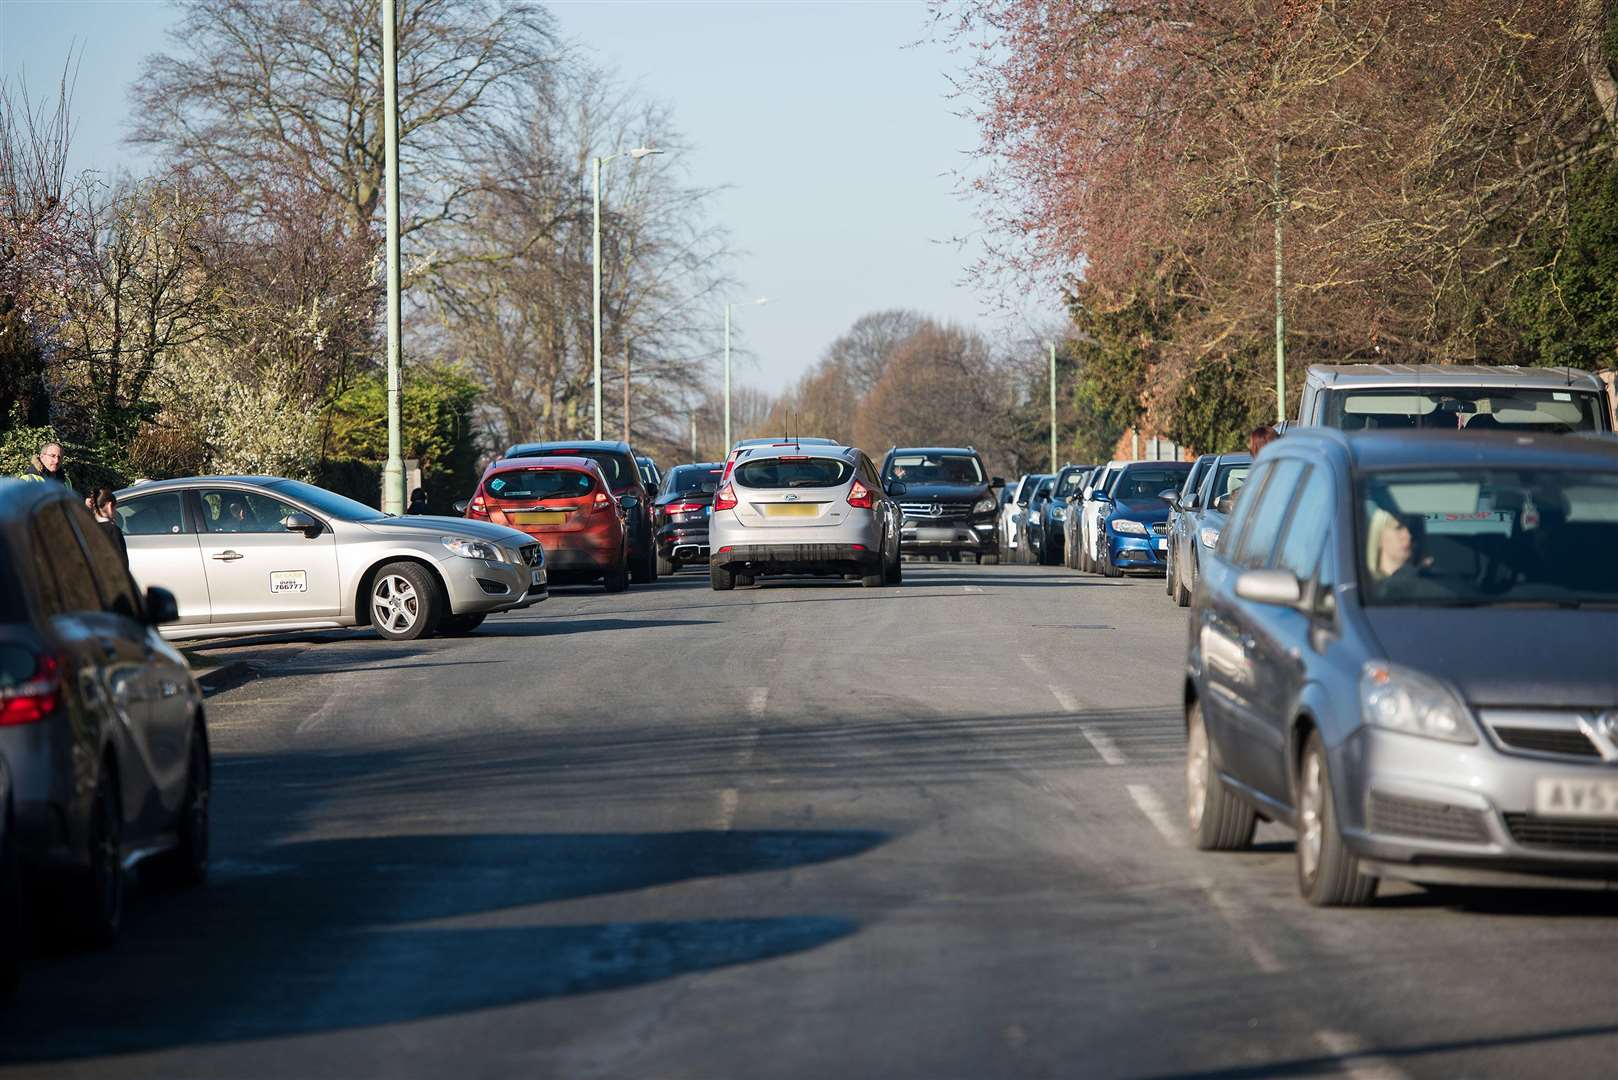 Hospital Road, Bury St Edmunds (near Brooklands Close/Westgate Primary School)..Pic of cars in the road and general chaos at school drop-off time Picture Mark Westley. (7465154)